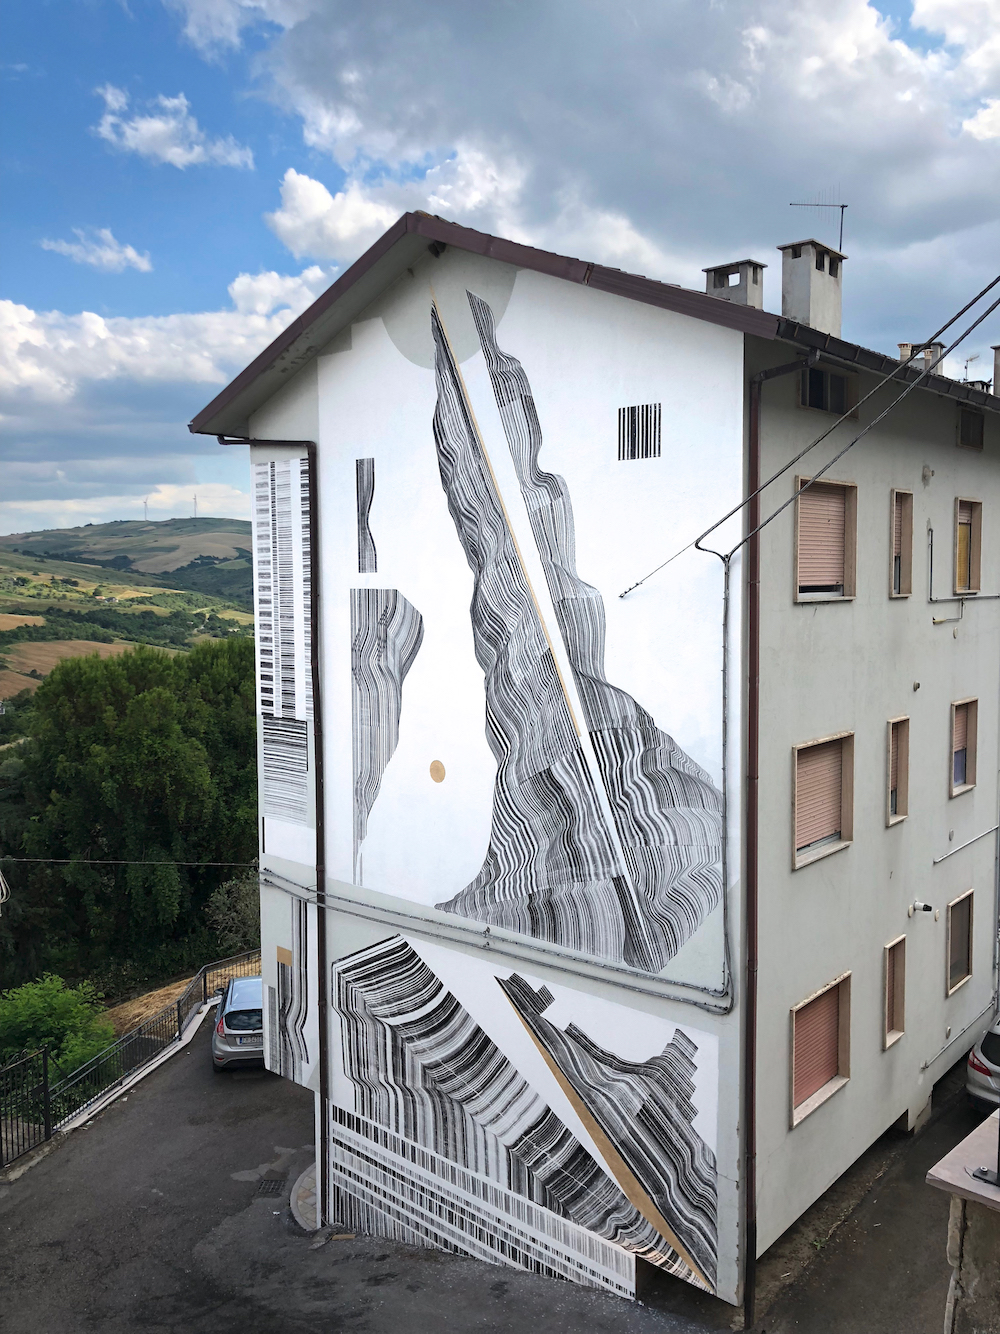 2501 street art in Civitacampomarano